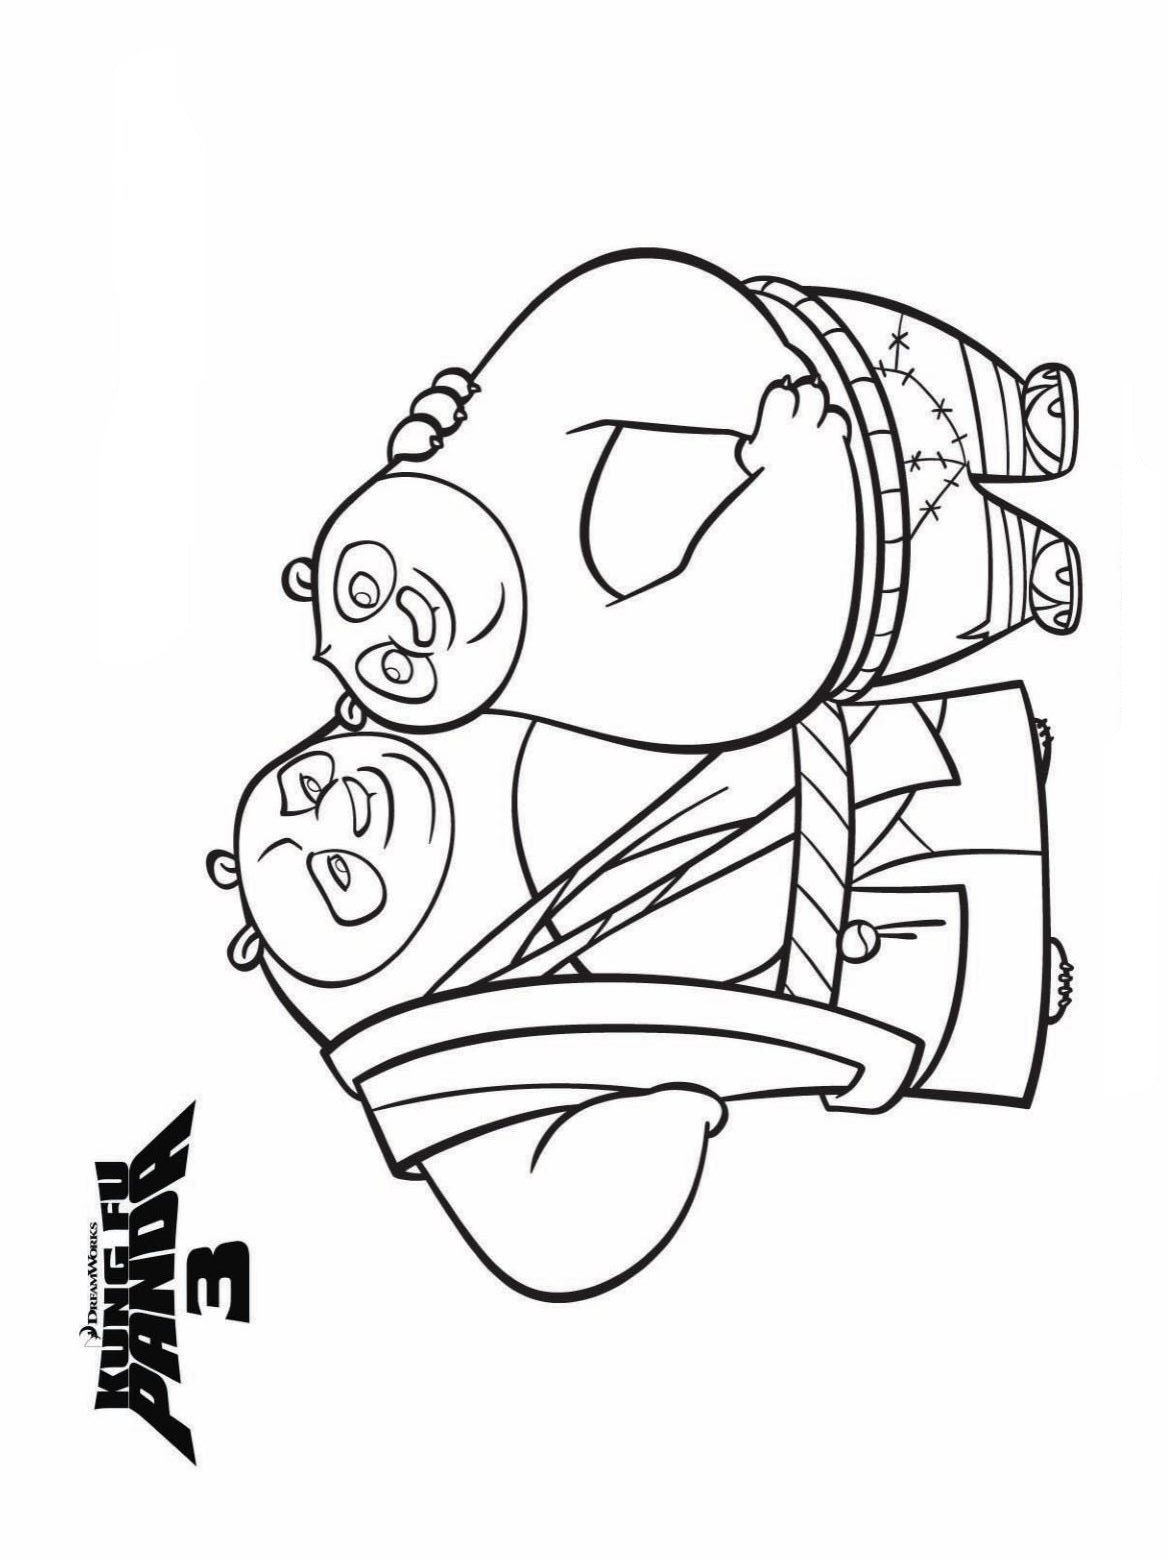 Kidsnfun 7 coloring pages